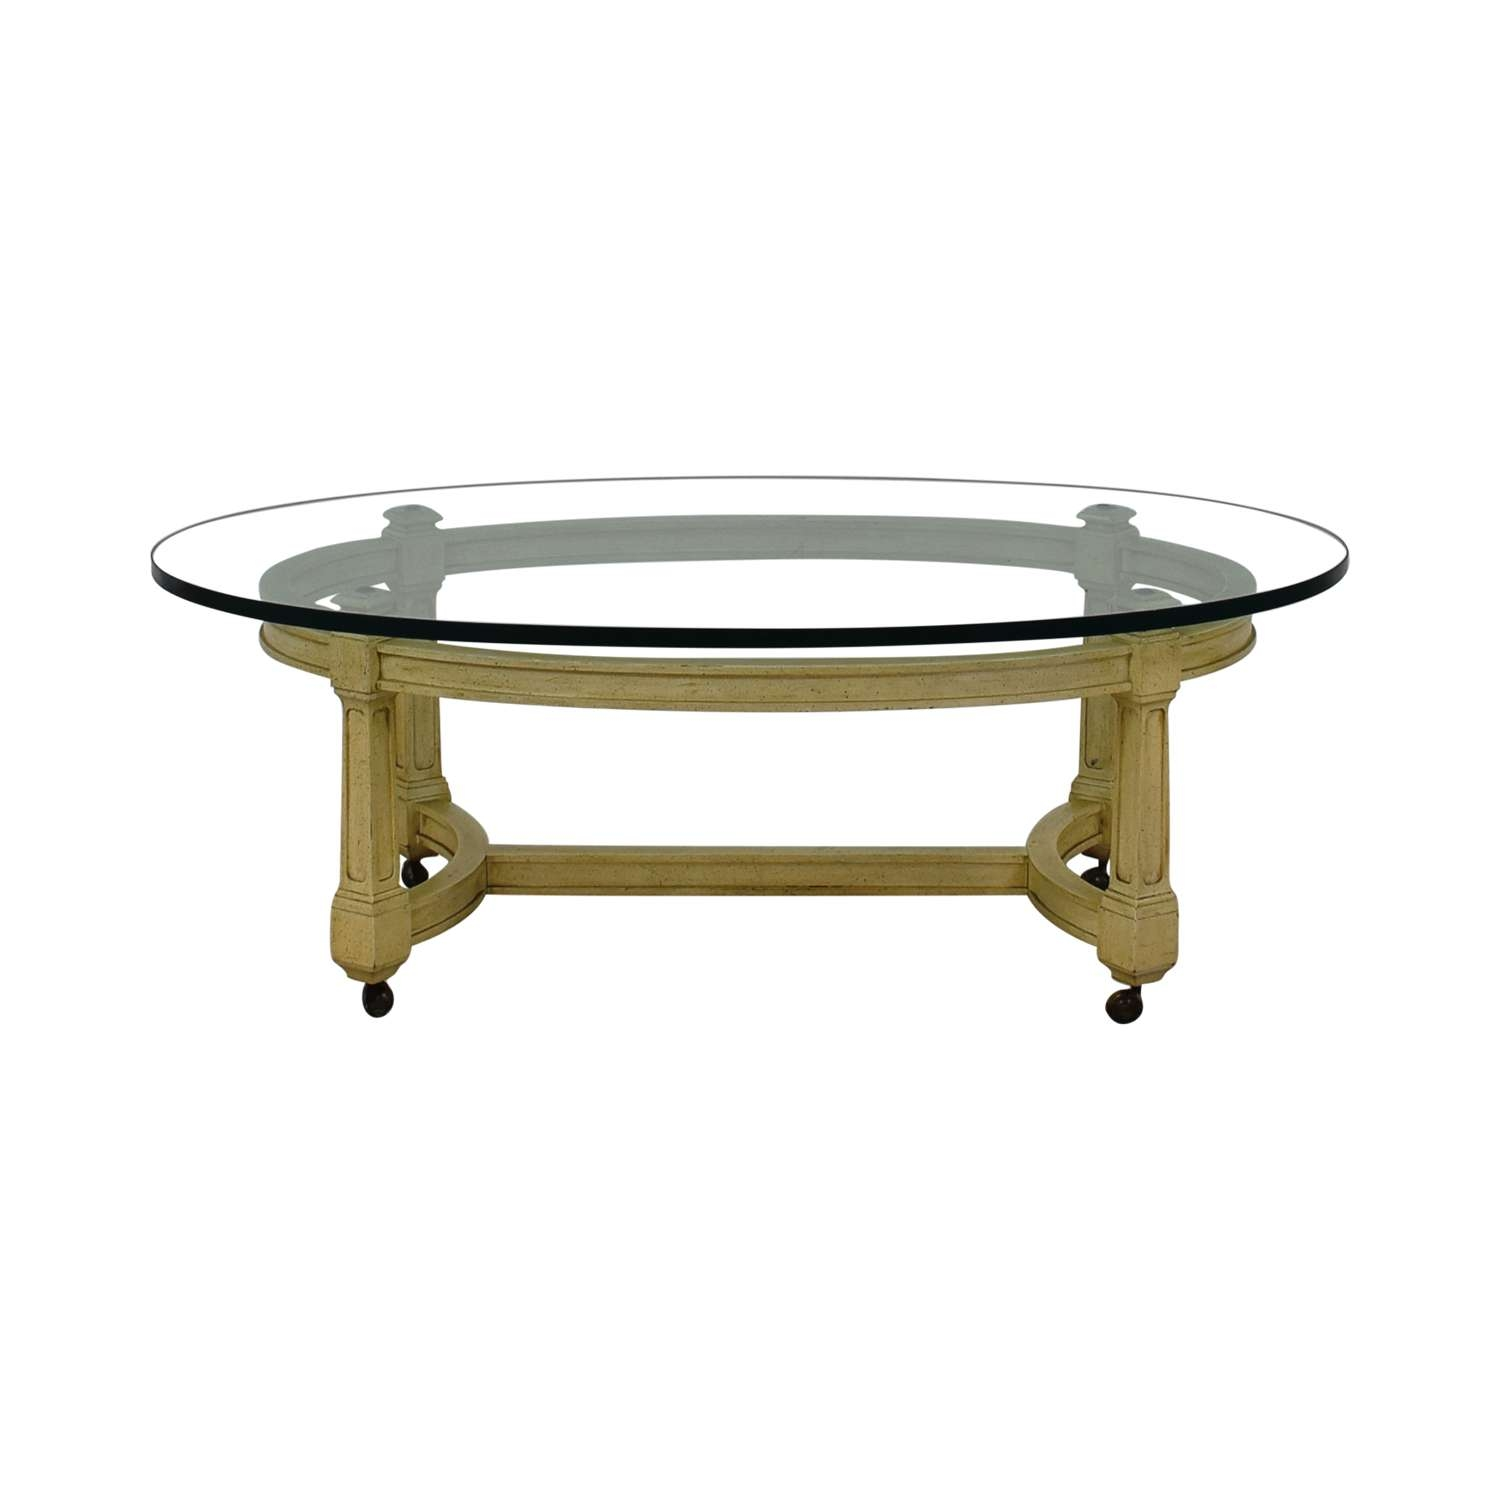 [%Popular White Oval Coffee Tables Inside 76% Off – Bo Concept Bo Concept White Round Coffee Table / Tables|76% Off – Bo Concept Bo Concept White Round Coffee Table / Tables In Popular White Oval Coffee Tables%] (View 1 of 20)